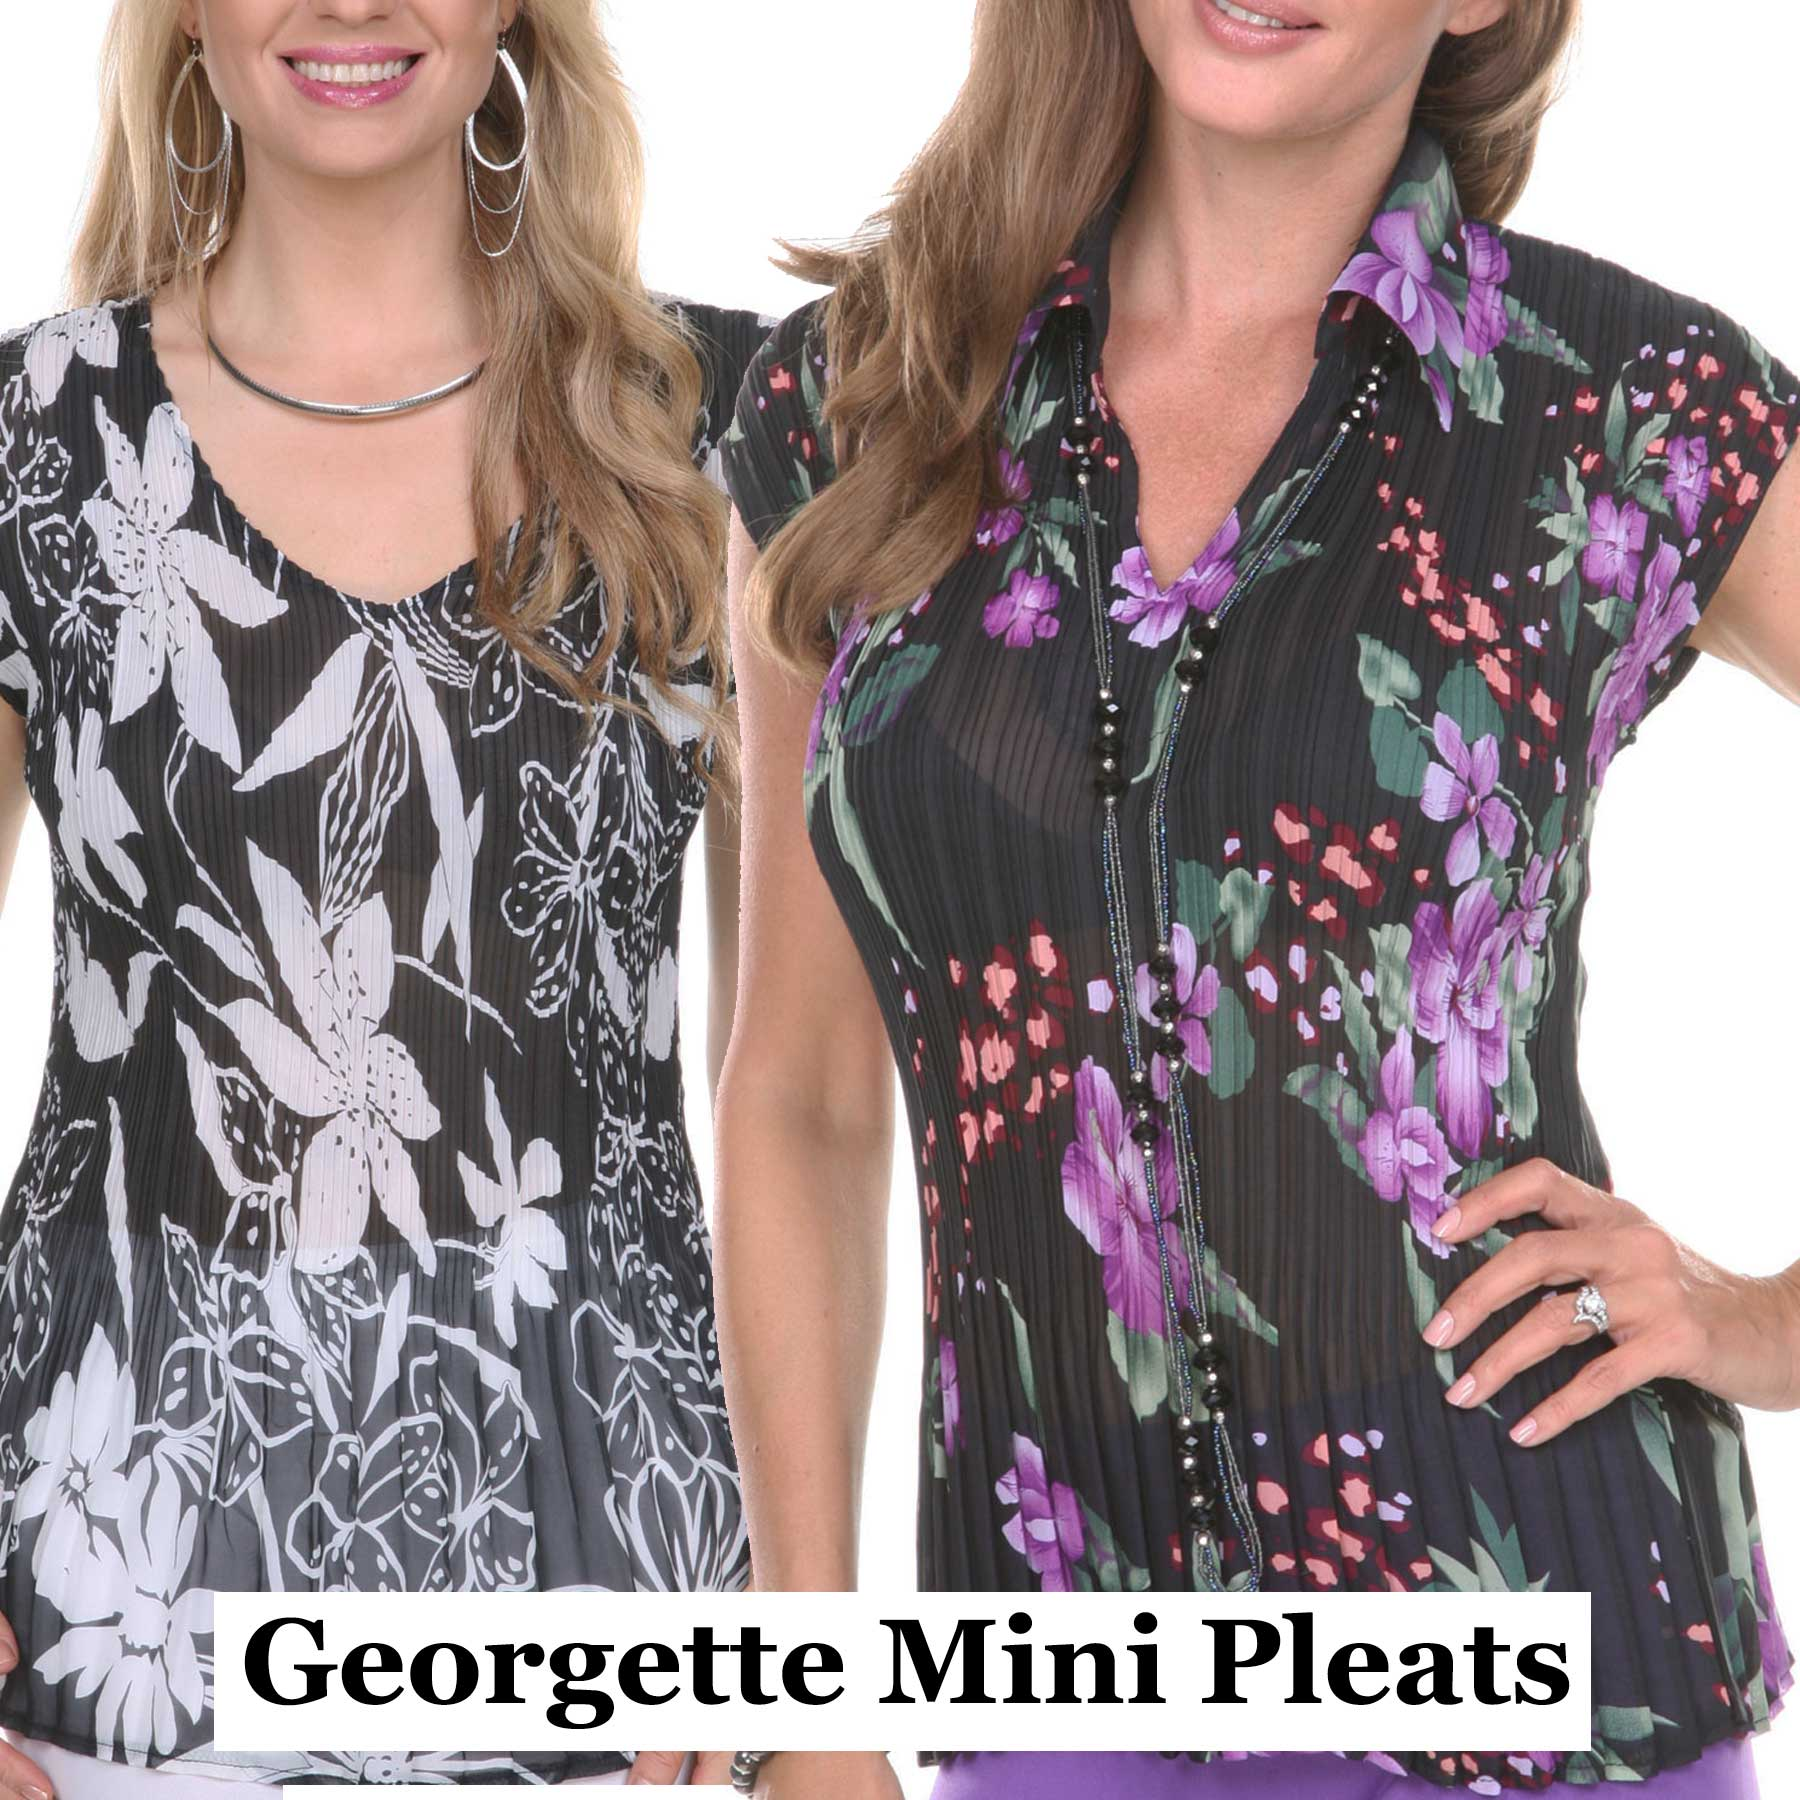 The Georgette Mini Pleat Collection